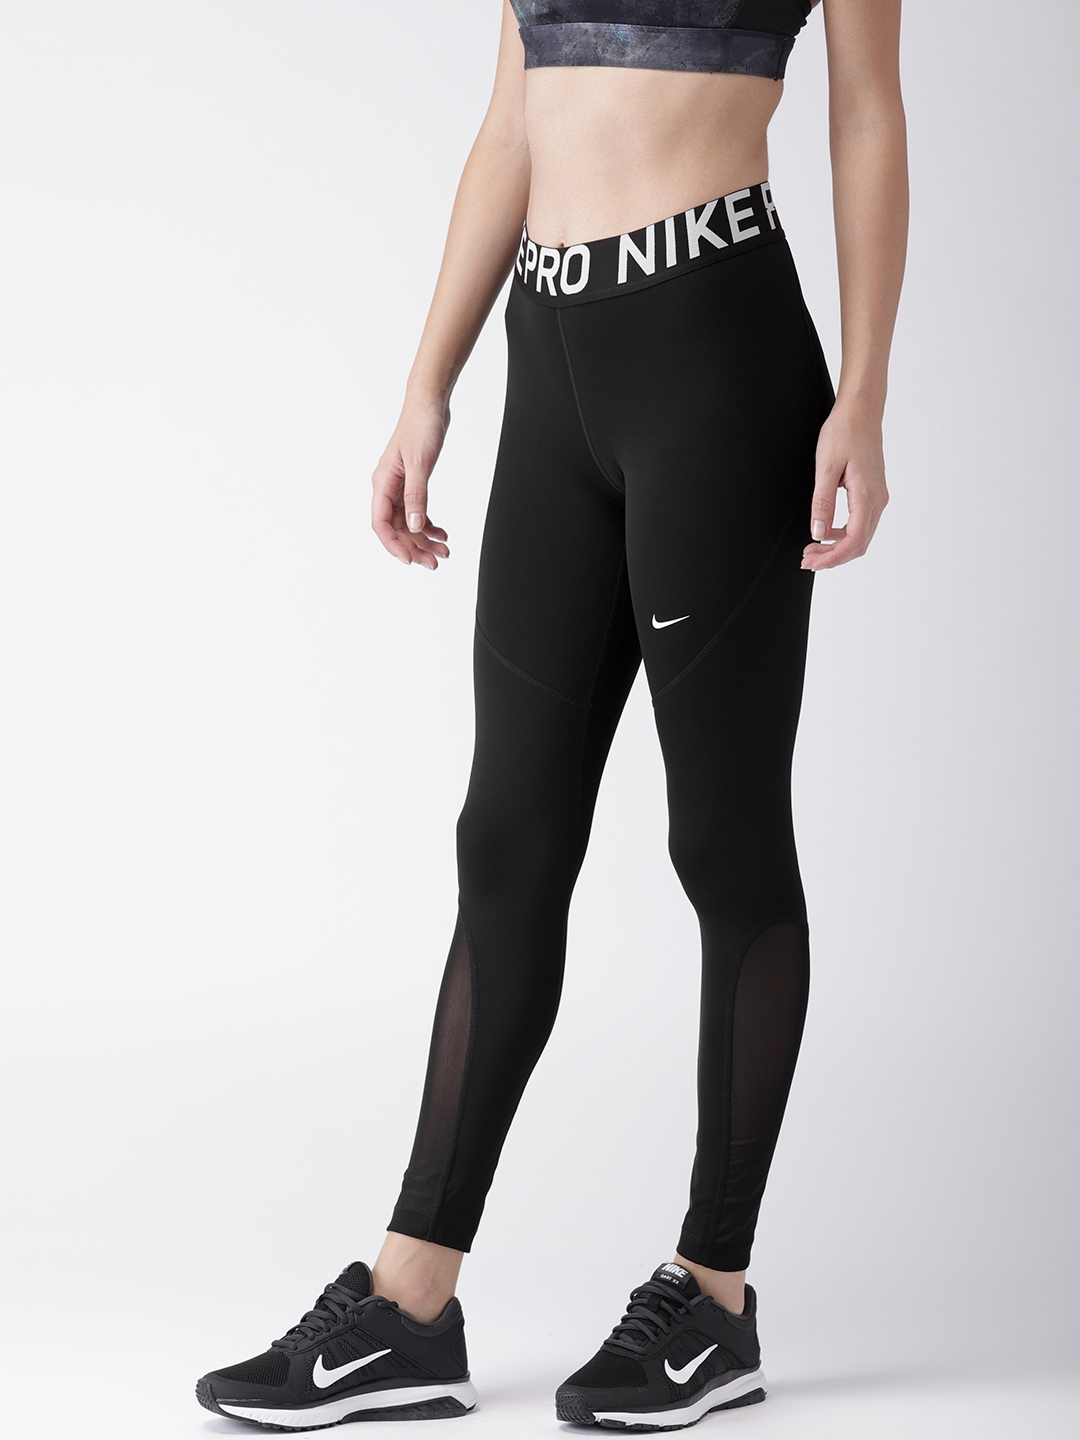 26f6a69d8 Nike Women Black Solid Tight Fit AS W NP TGHT NEW Training Tights. This  product is already at its best price